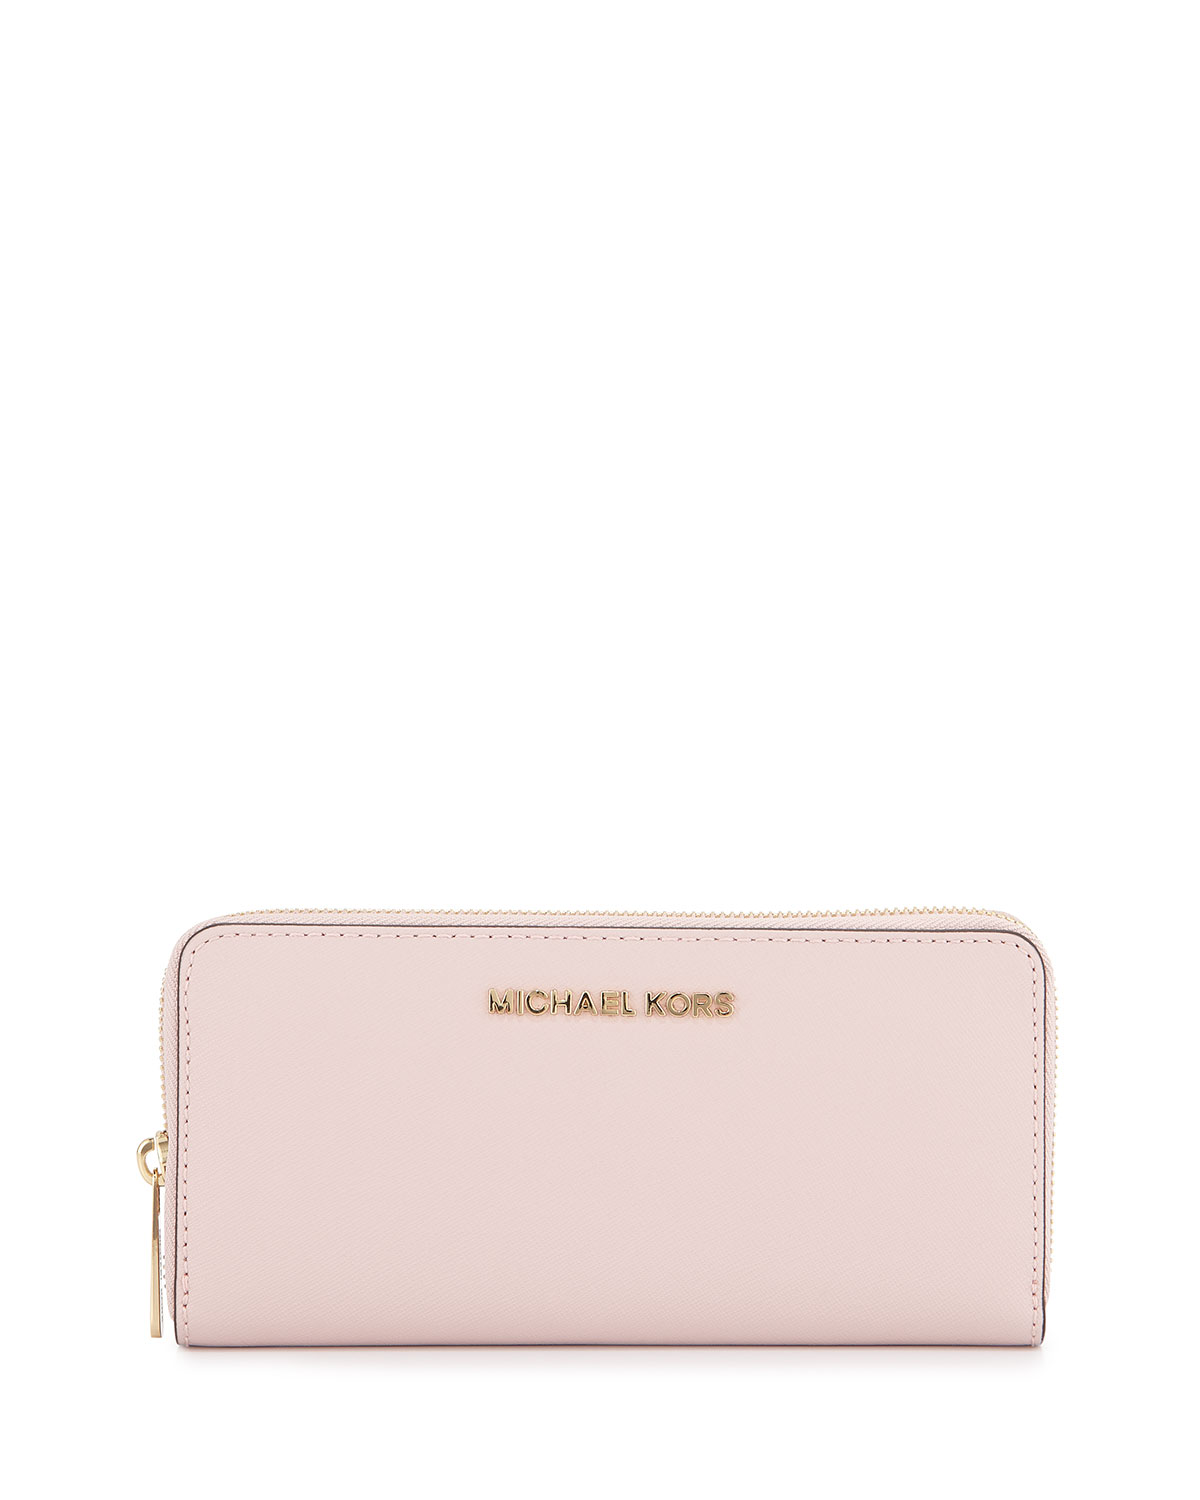 ab996bfebed2 MICHAEL Michael Kors Jet Set Continental Leather Wallet